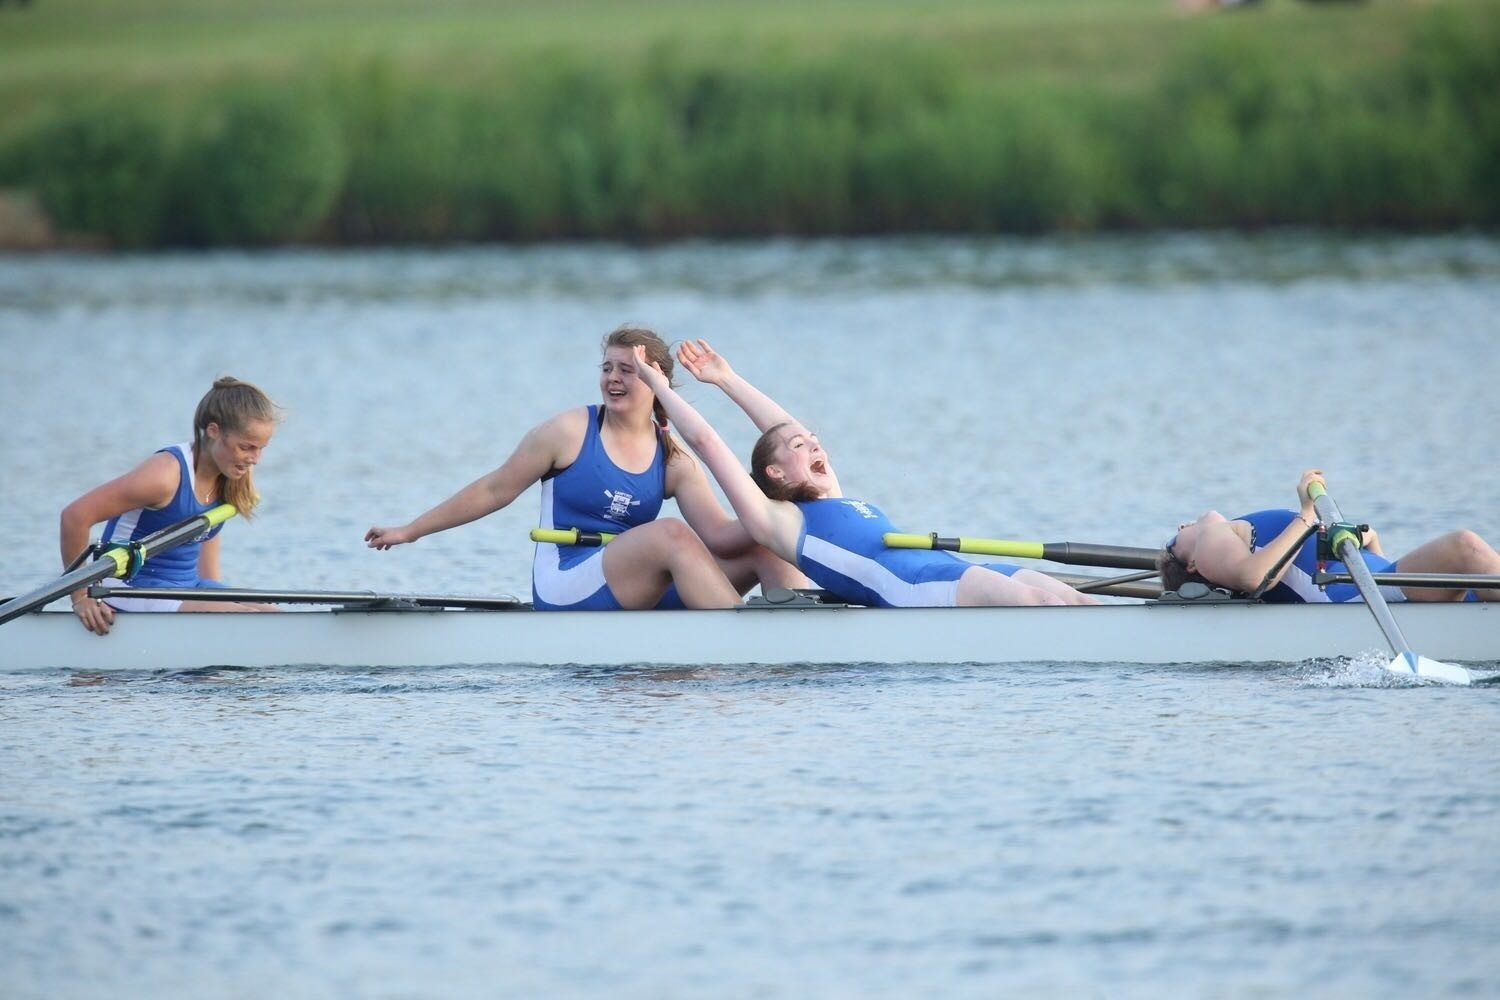 MEDAL JOY: Canford School's senior girls celebrate winning bronze at nationals